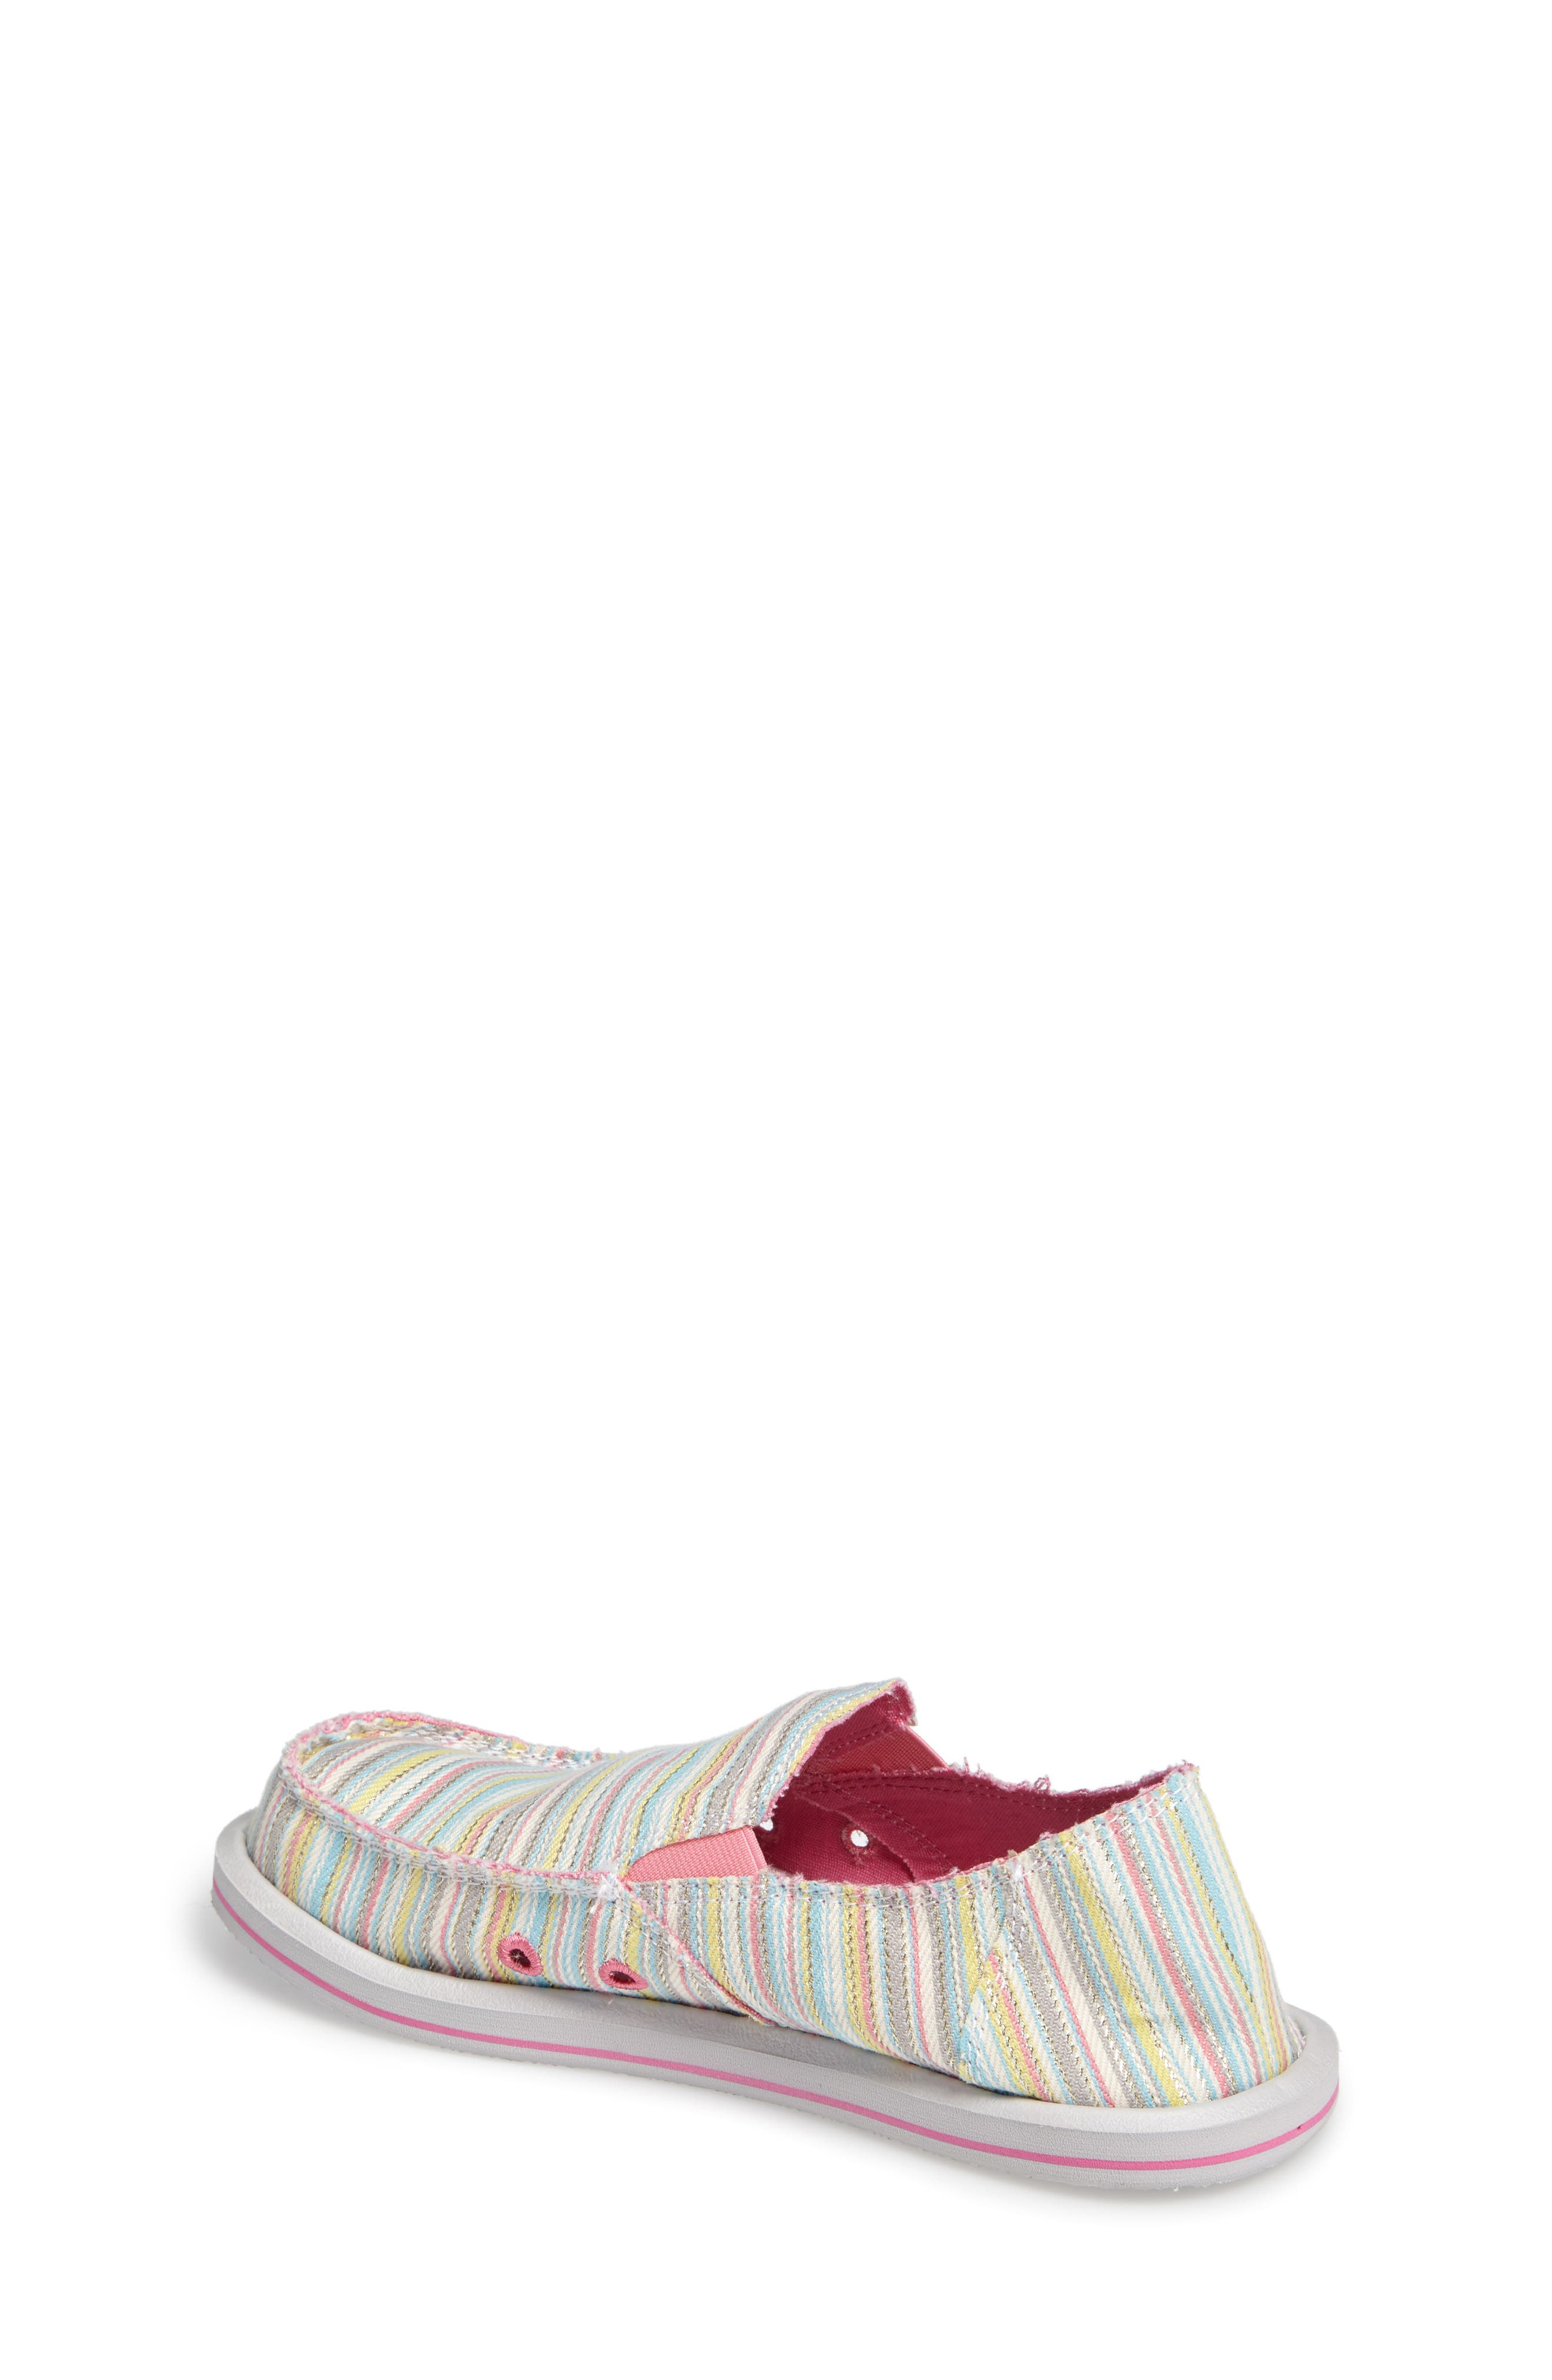 'Donna - Poncho' Vegan Slip-On,                             Alternate thumbnail 2, color,                             Aqua/ Pink Pinstripe